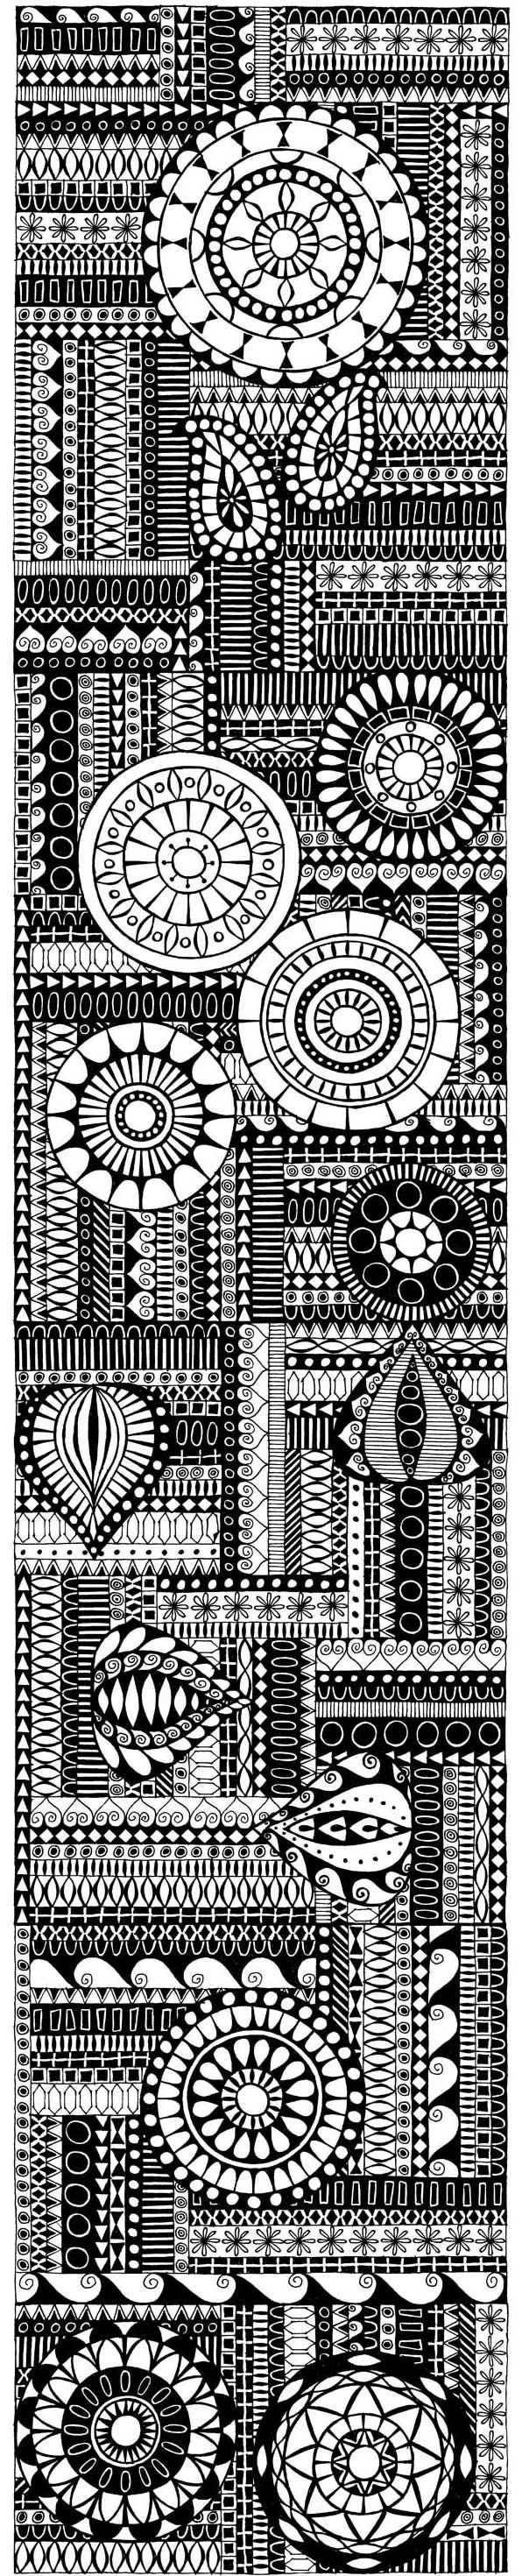 I can see this idea in a hooked rug!  Don't copy but make up your own combination of blocks and circles.: Patterns Drawings, Zentangle Doodles Ideas, Zendala Patterns, Doodles Inspiration, Circles Zentangle Doodles, Zen Doodle, Art Zentangle, Aztec Drawings Patterns, Aztec Design Art